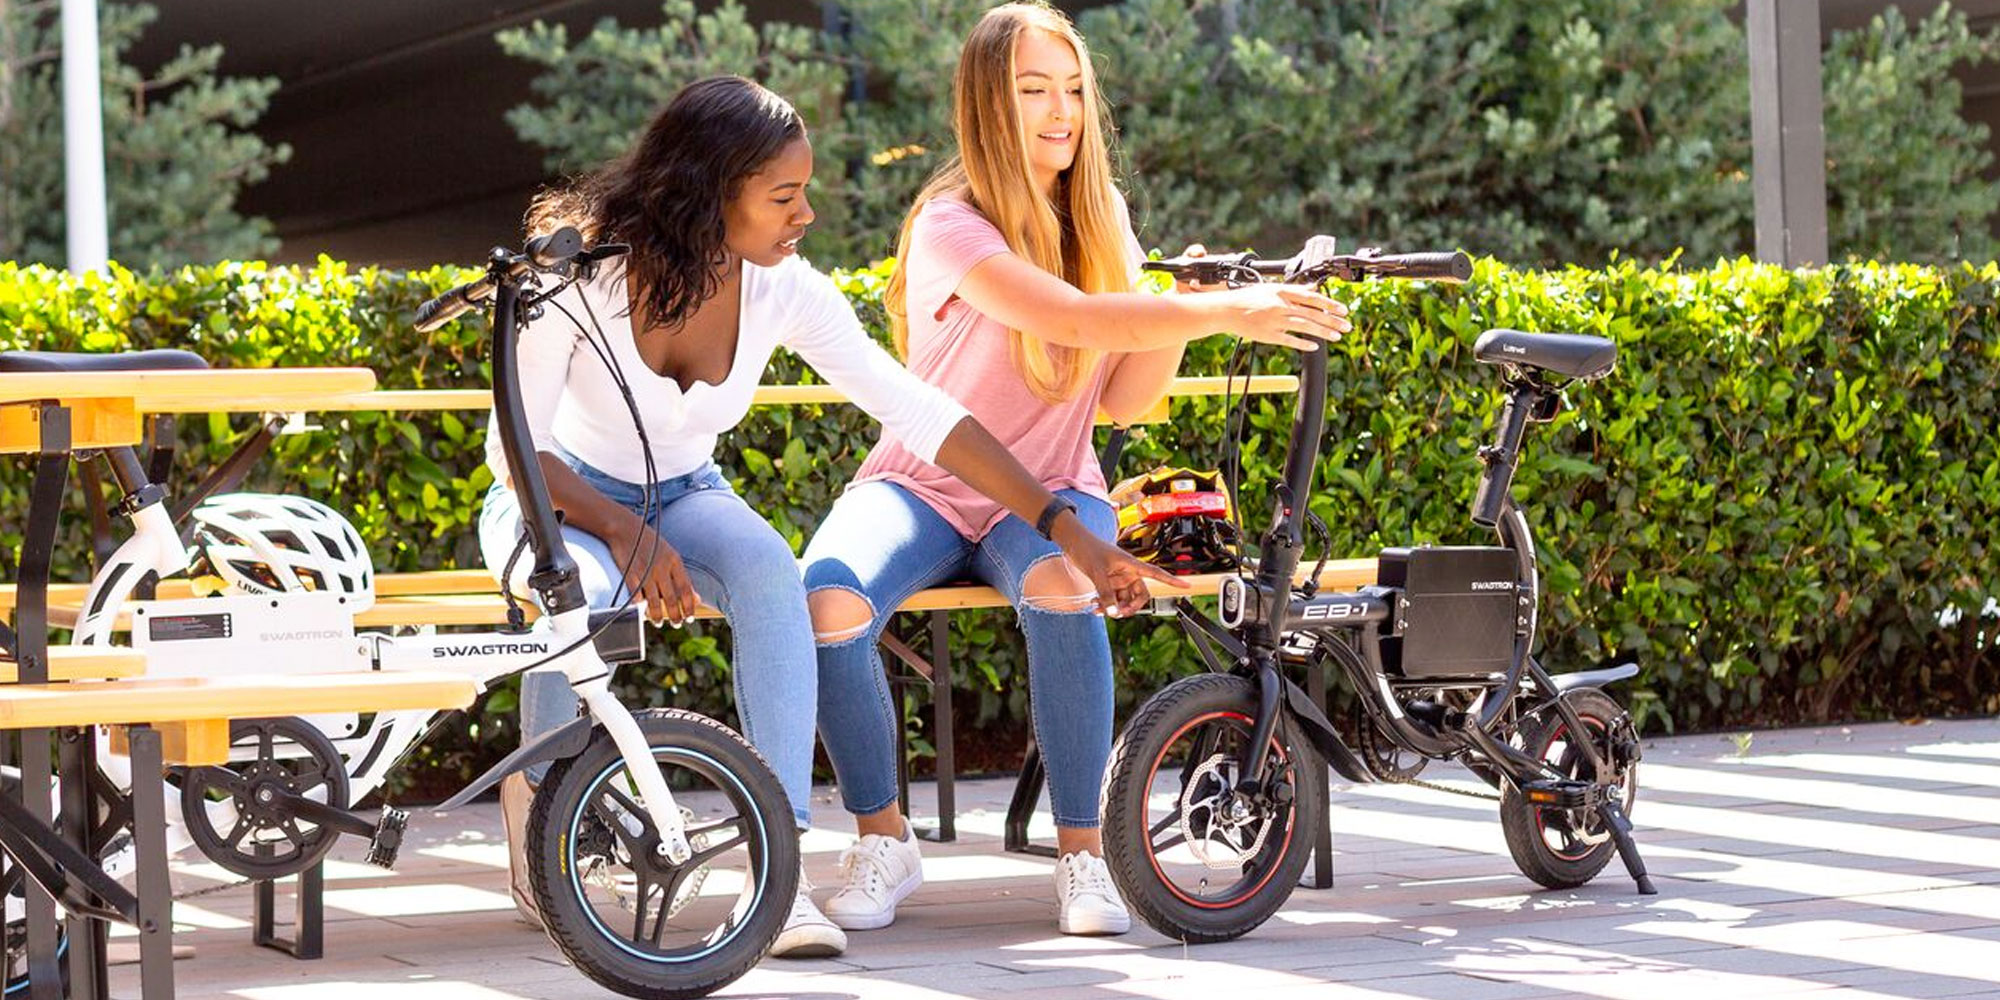 The SWAGTRON EB1 is a foldable eBike that can go over 12MPH